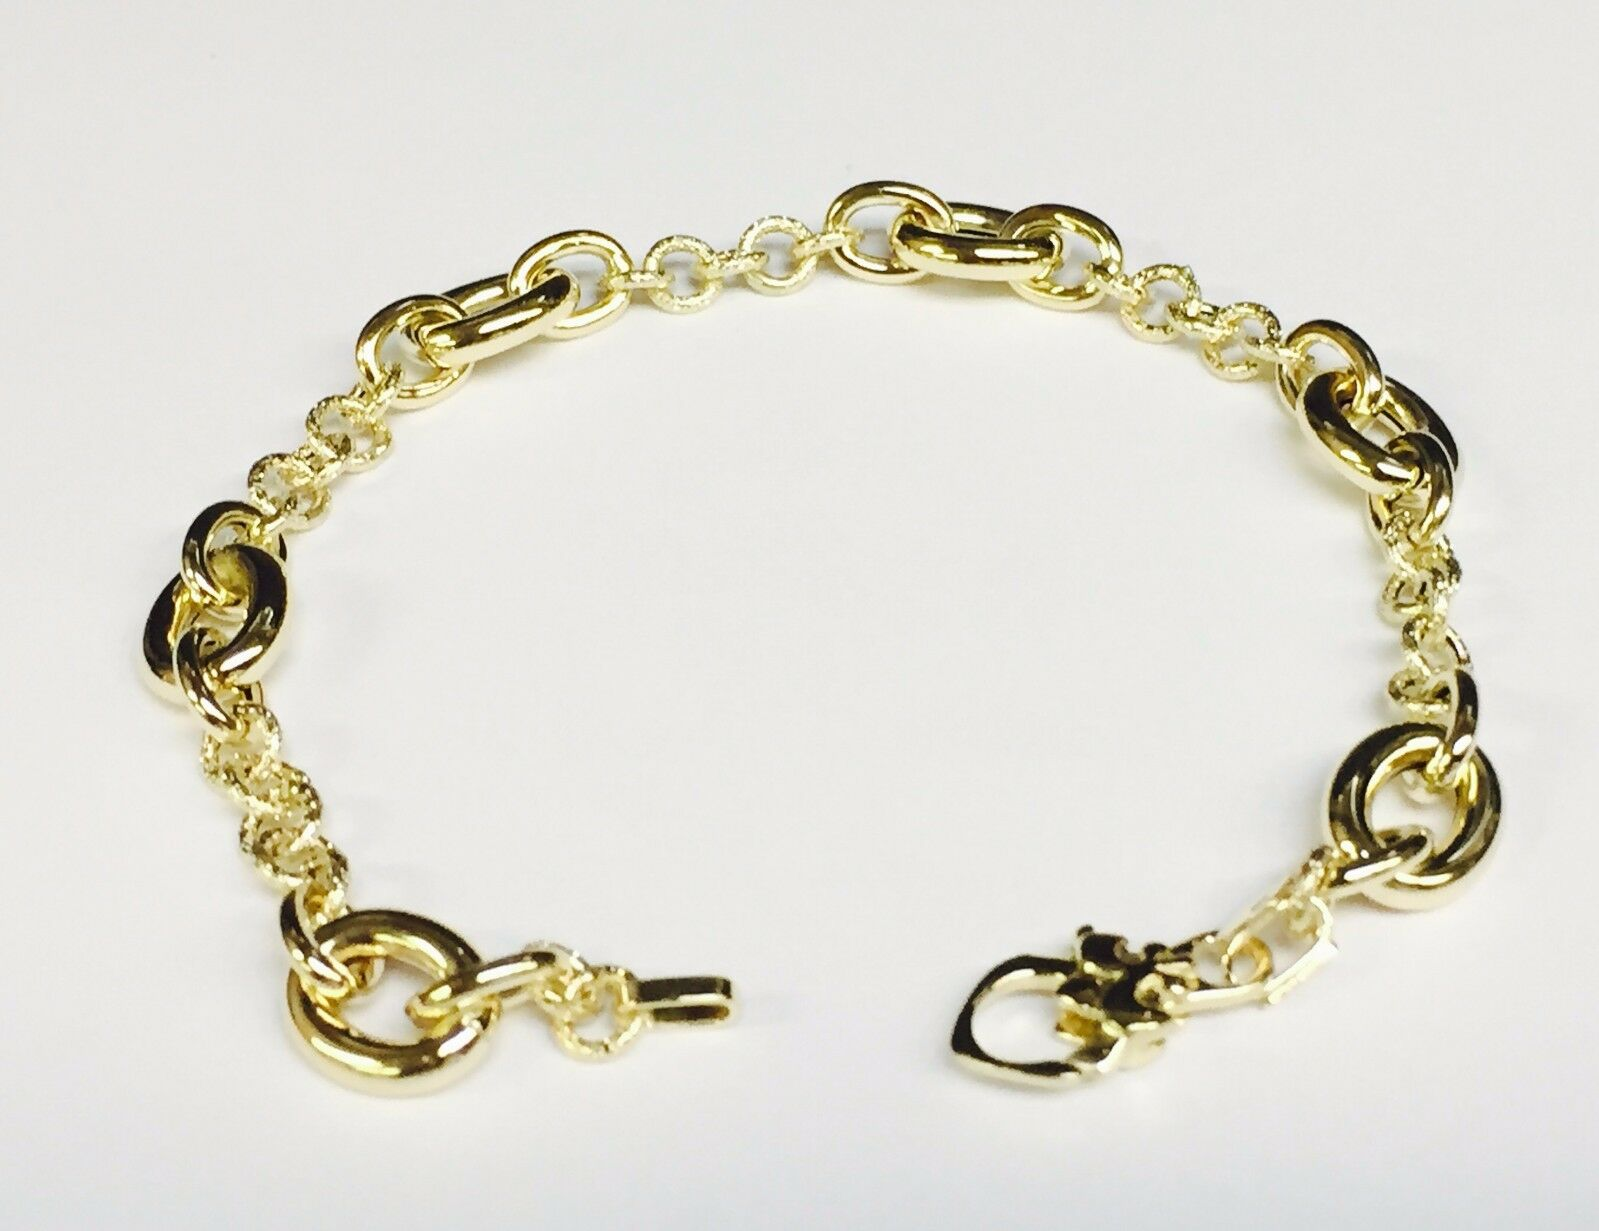 14kt Yellow gold DESIGNER FASHION link BRACELET 7.5   8.5 MM  5 grams